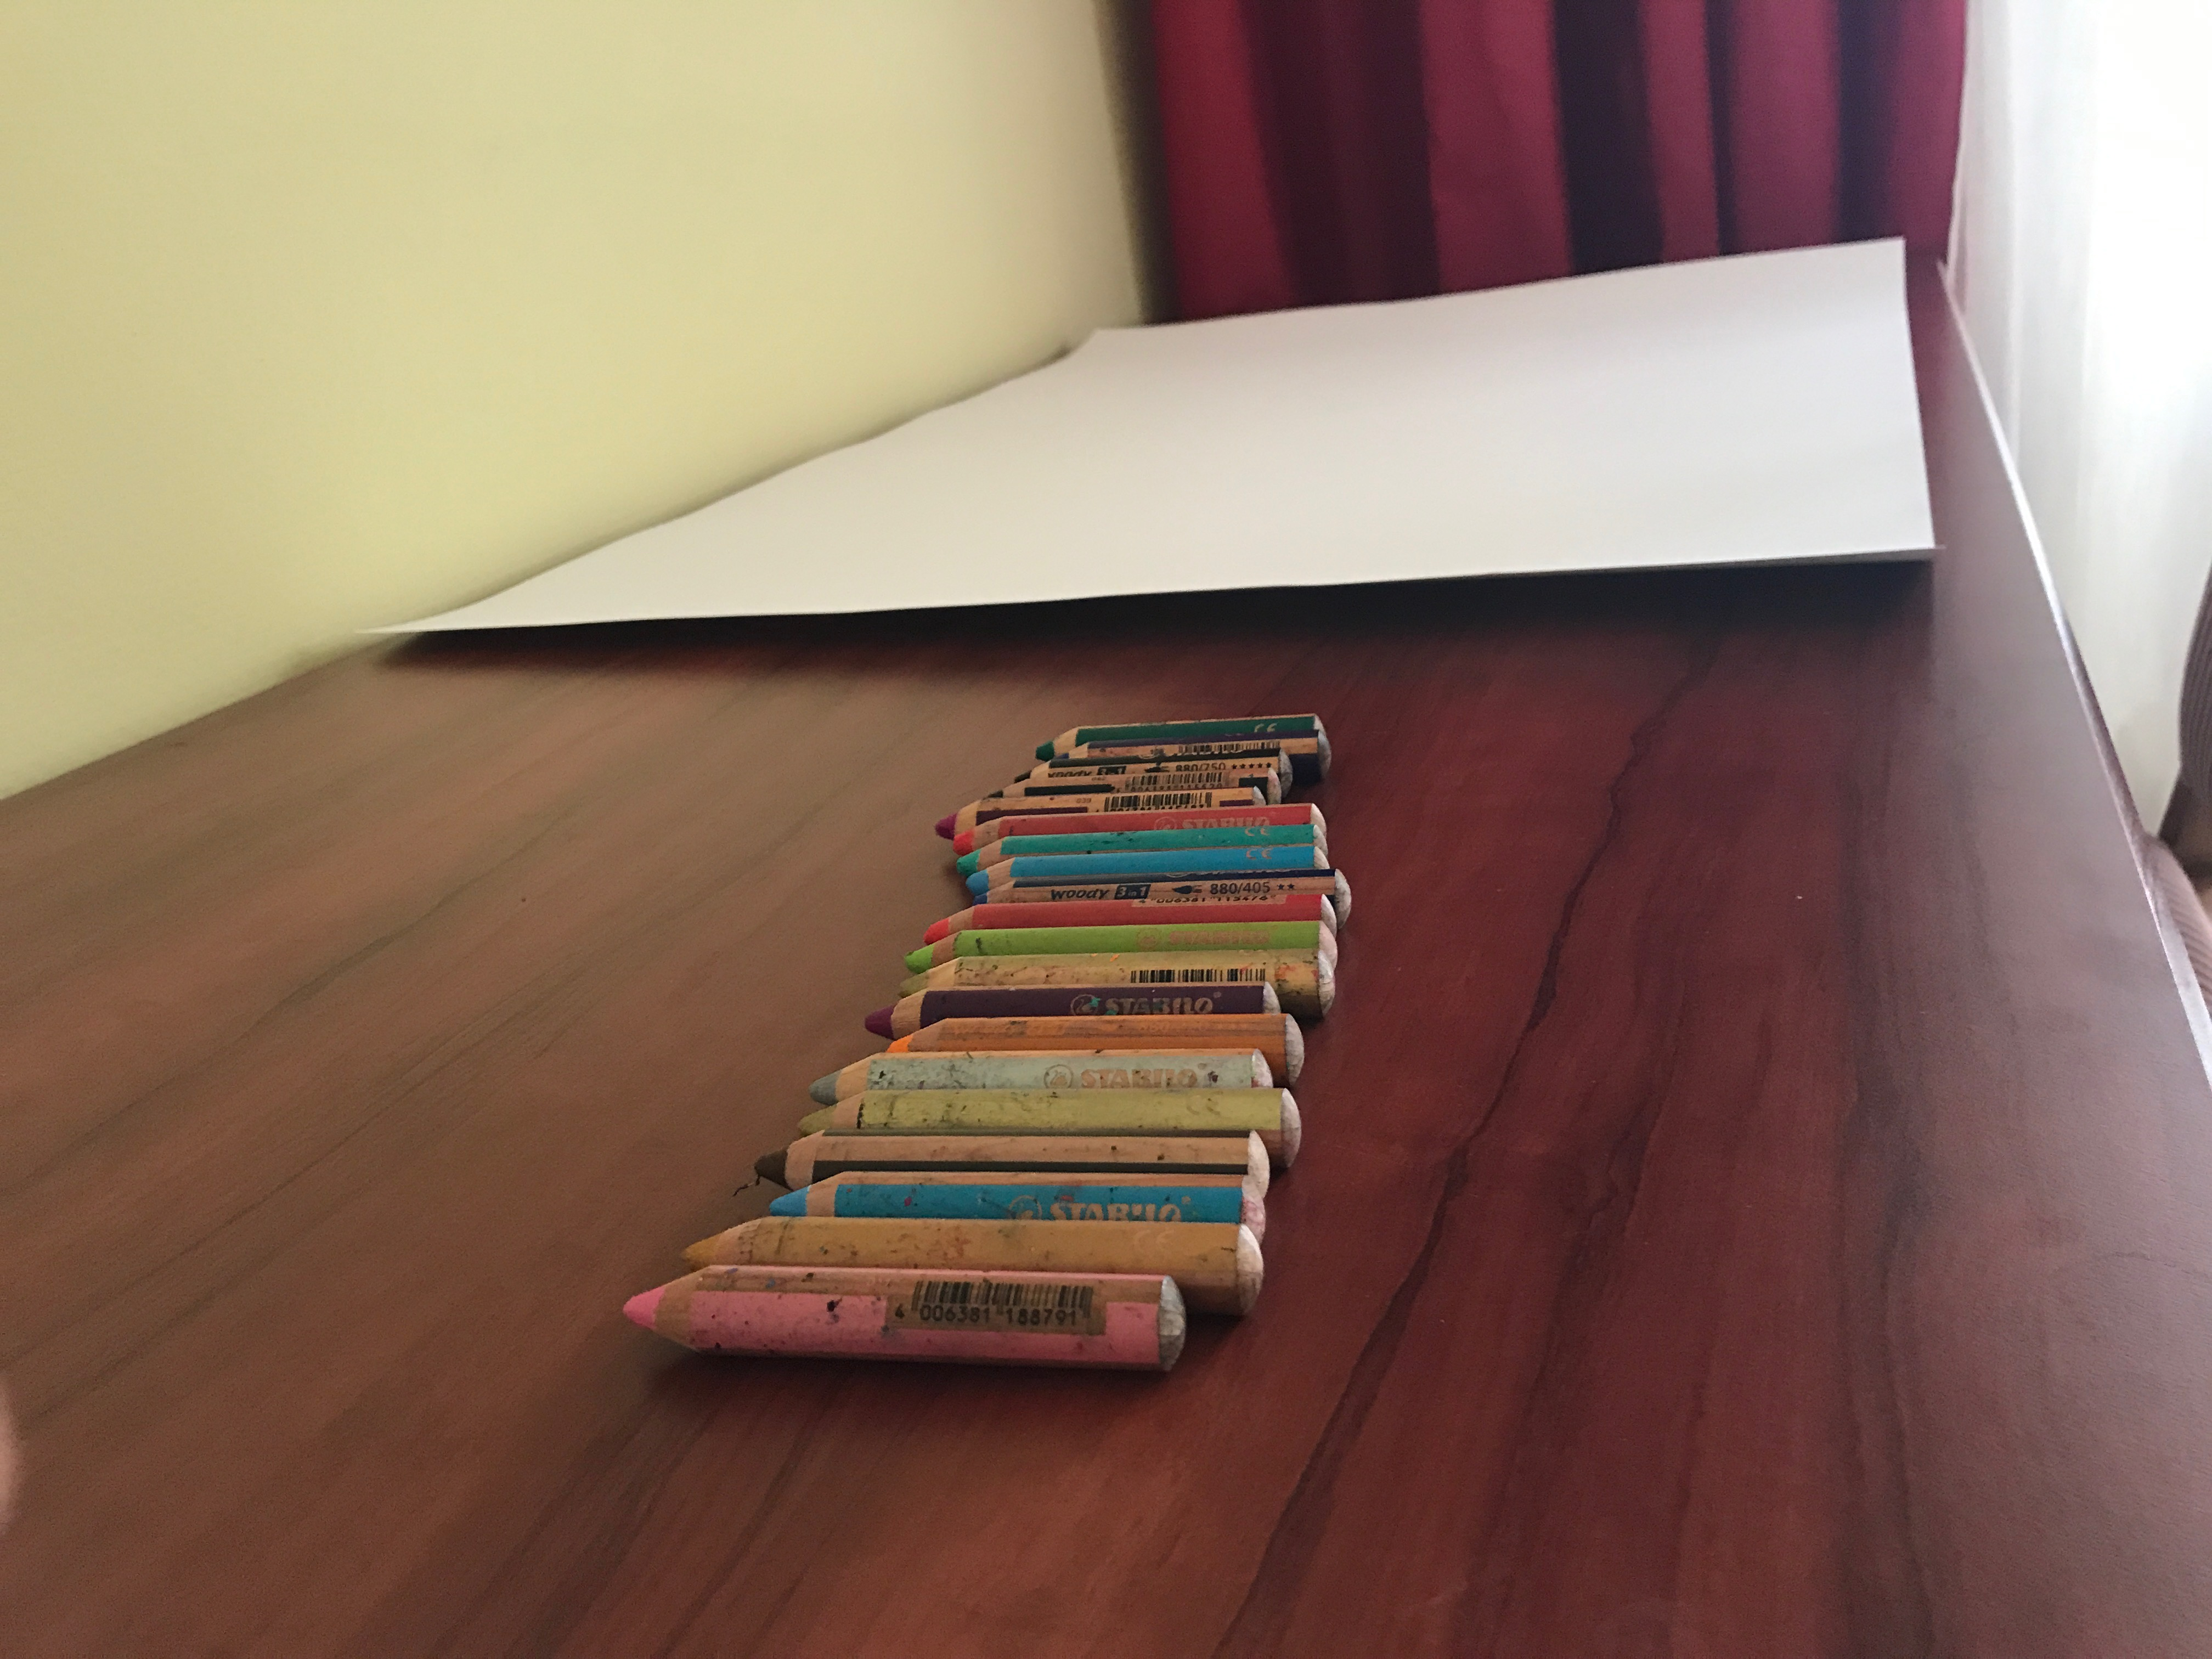 Crayons and paper waiting for a science sketch. Credit: Melissae Fellet